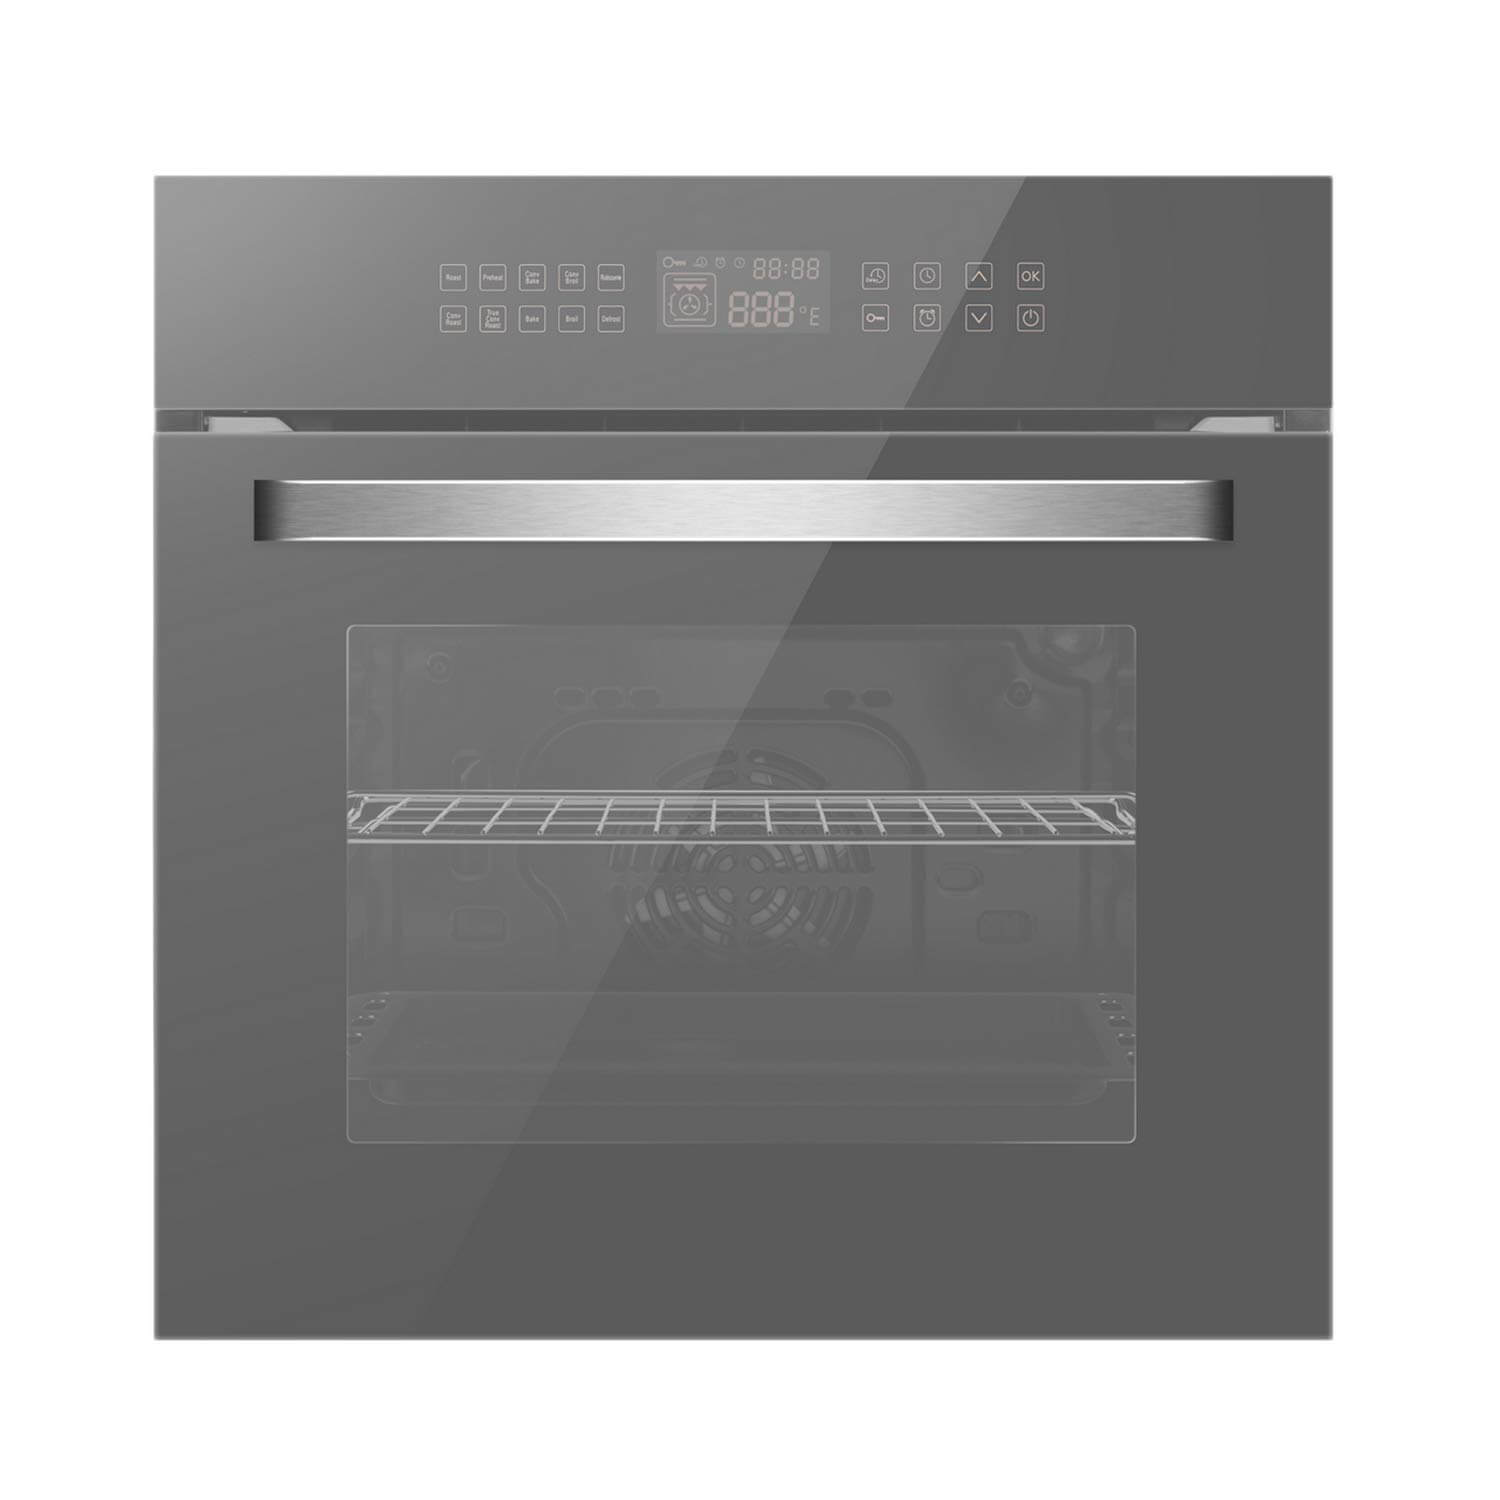 Empava WOC17 Built-In Single Wall Oven – Convection